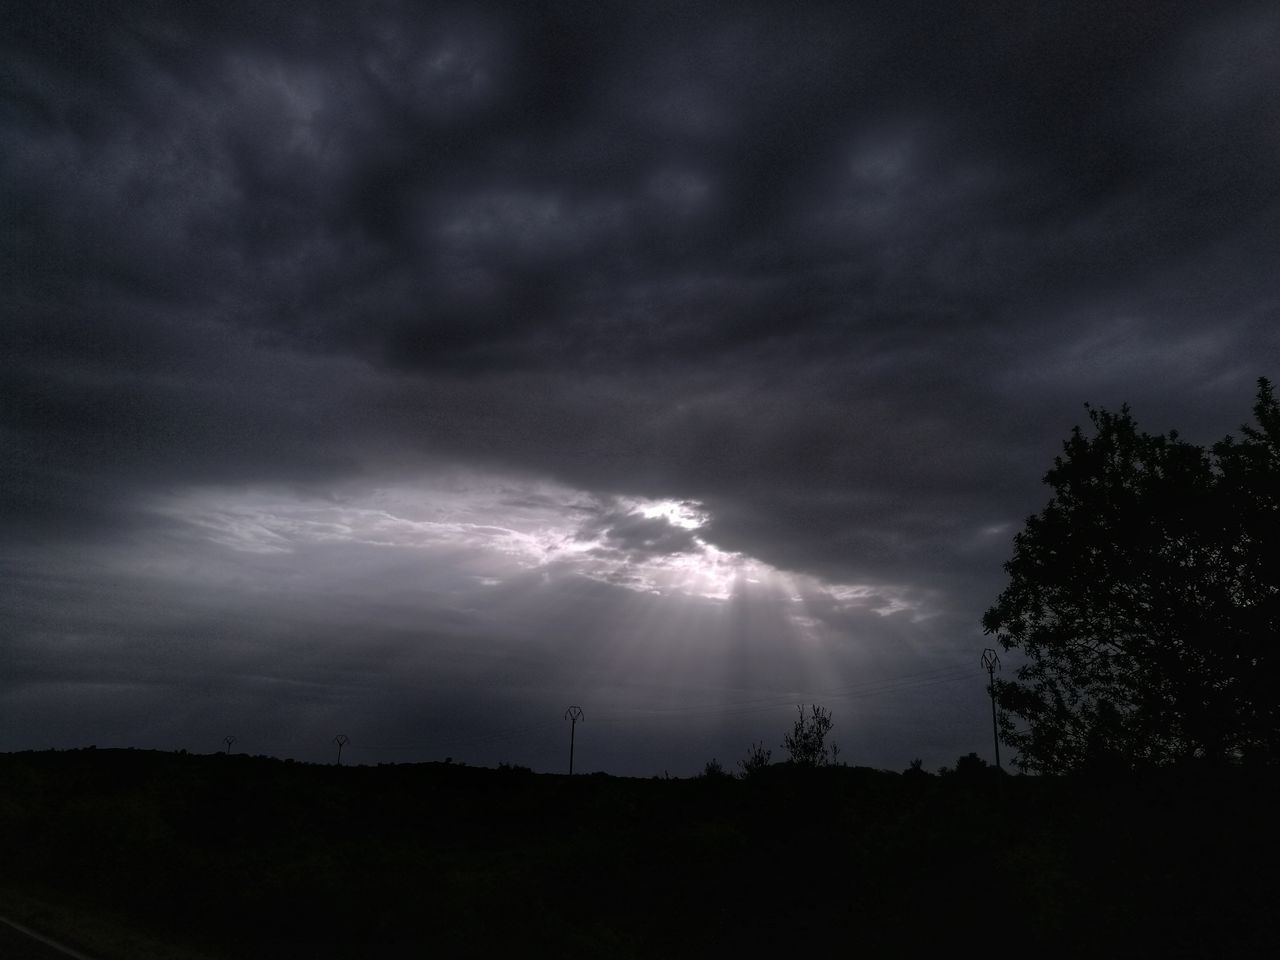 sky, cloud - sky, nature, beauty in nature, silhouette, storm cloud, weather, dramatic sky, tree, scenics, no people, storm, thunderstorm, outdoors, lightning, power in nature, landscape, low angle view, night, forked lightning